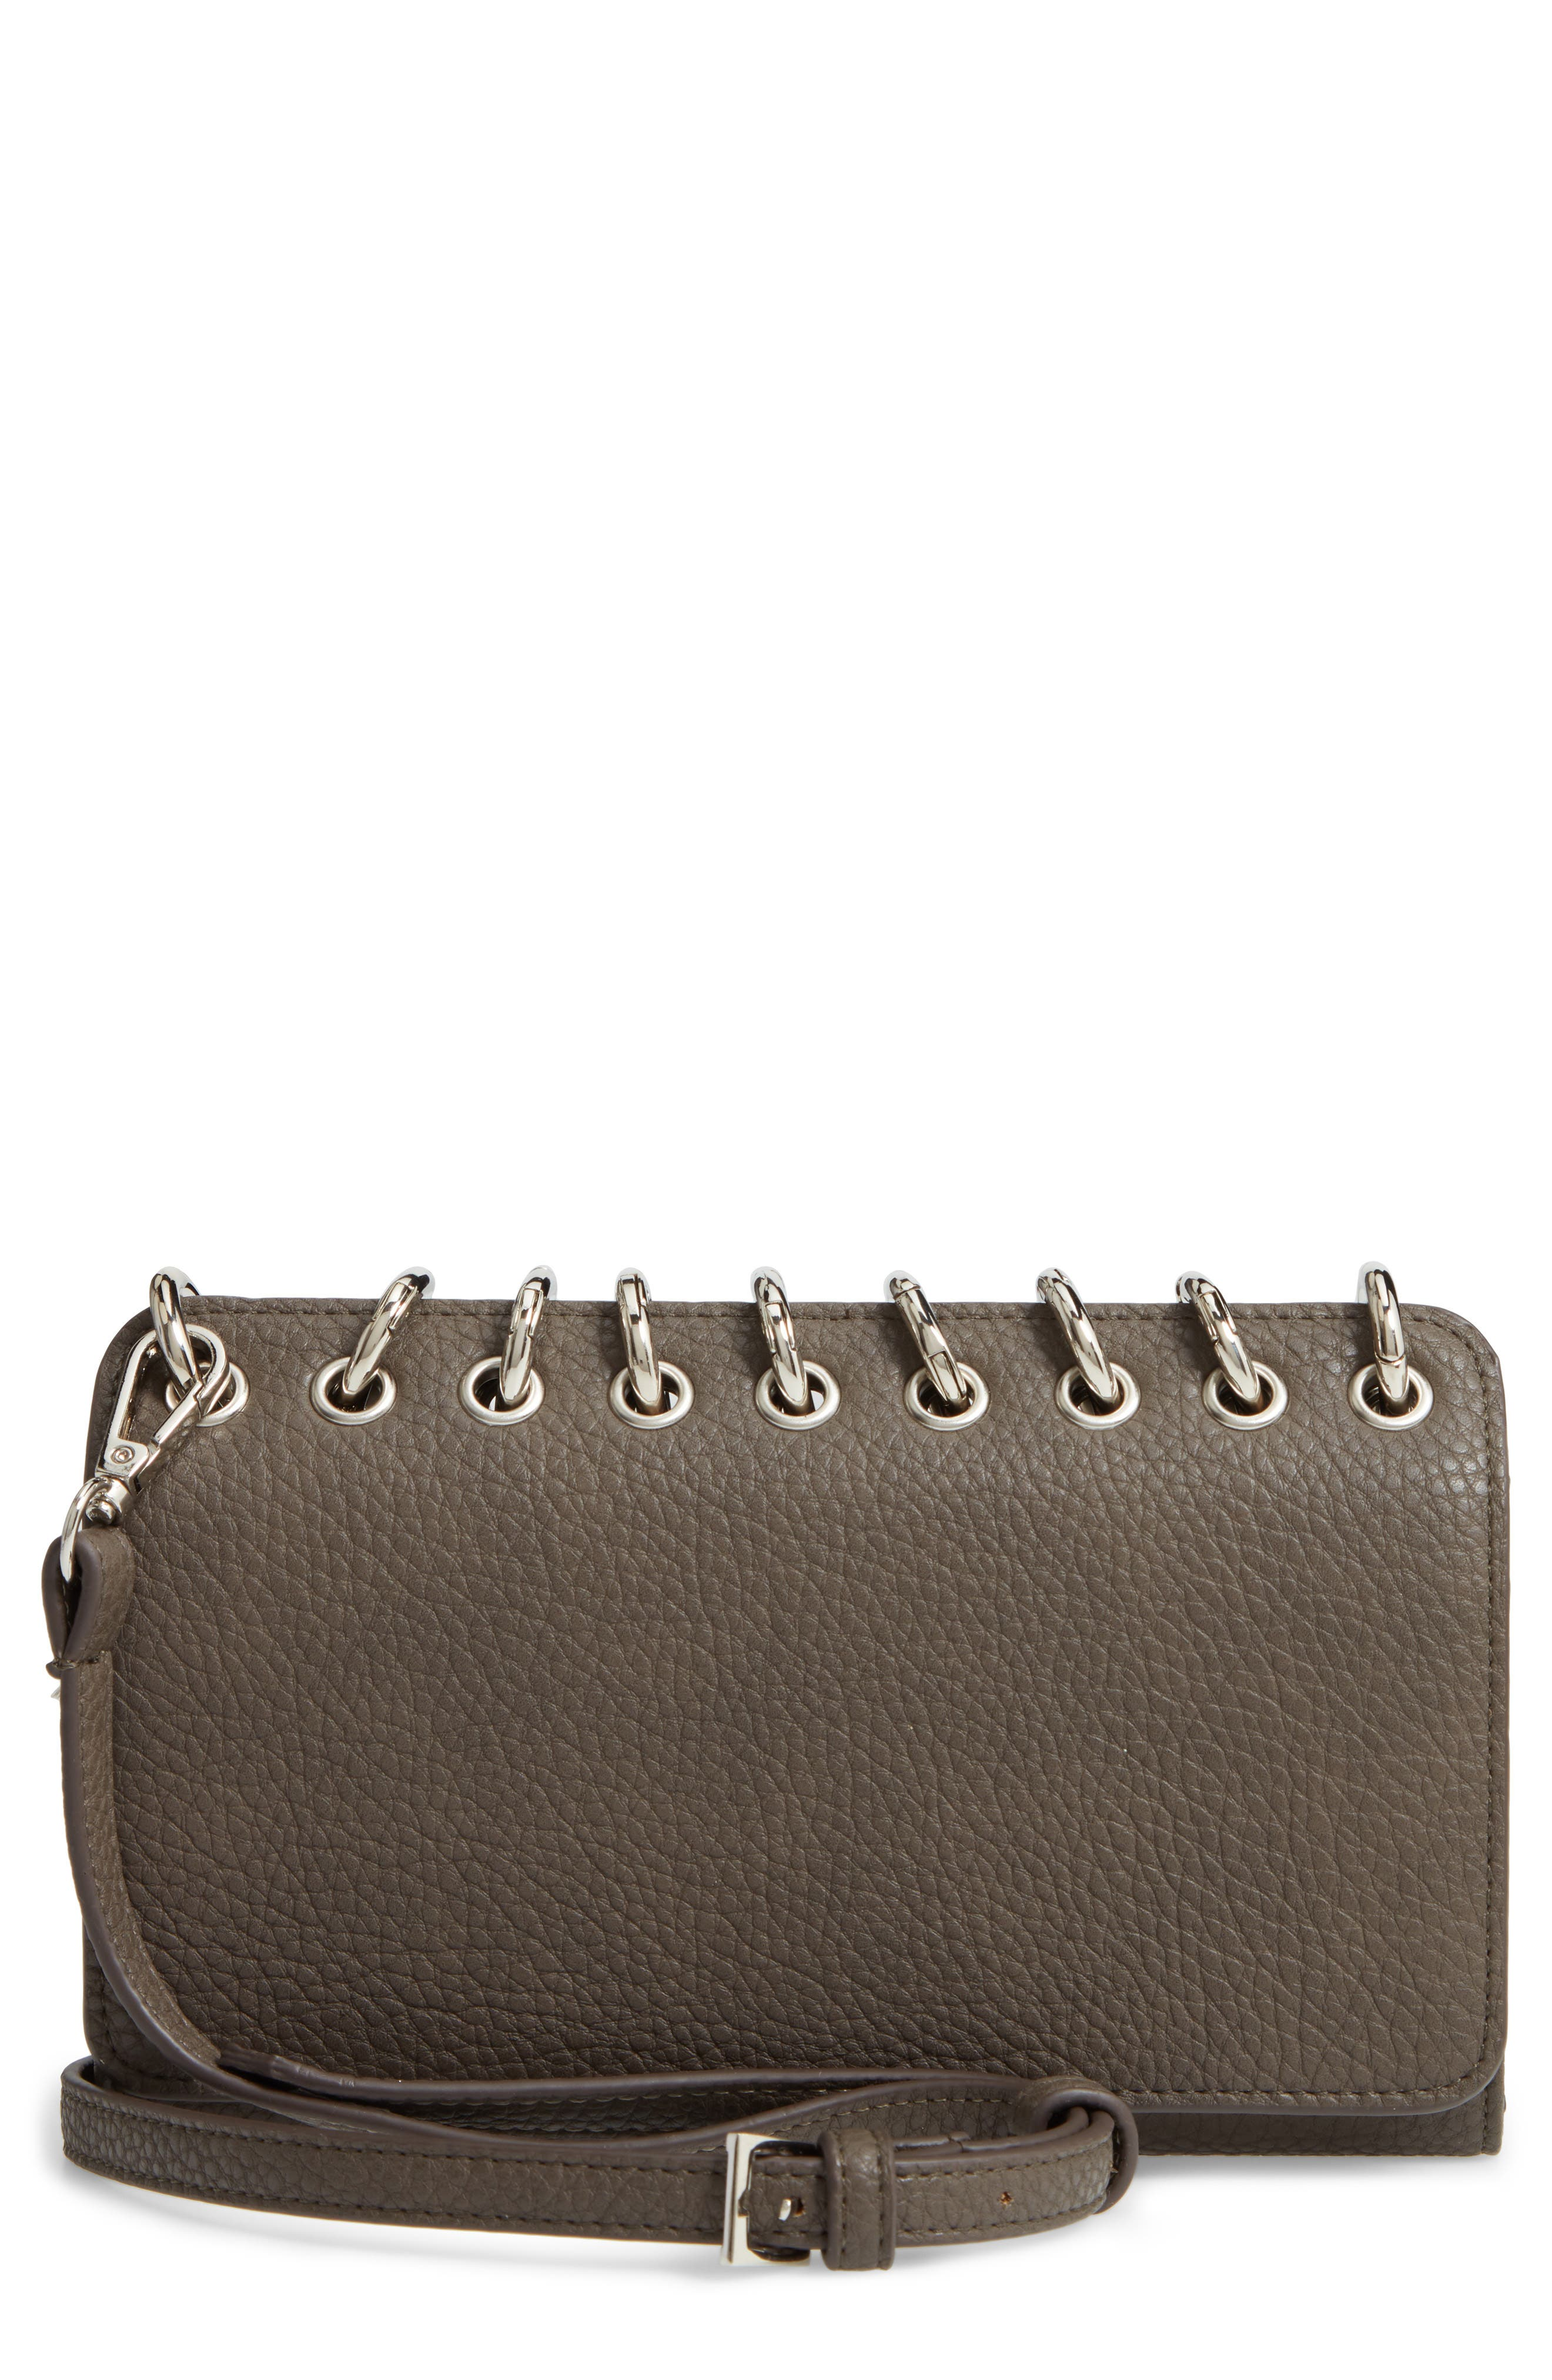 SONDRA ROBERTS Ring Faux Leather Crossbody Bag - Grey in Taupe